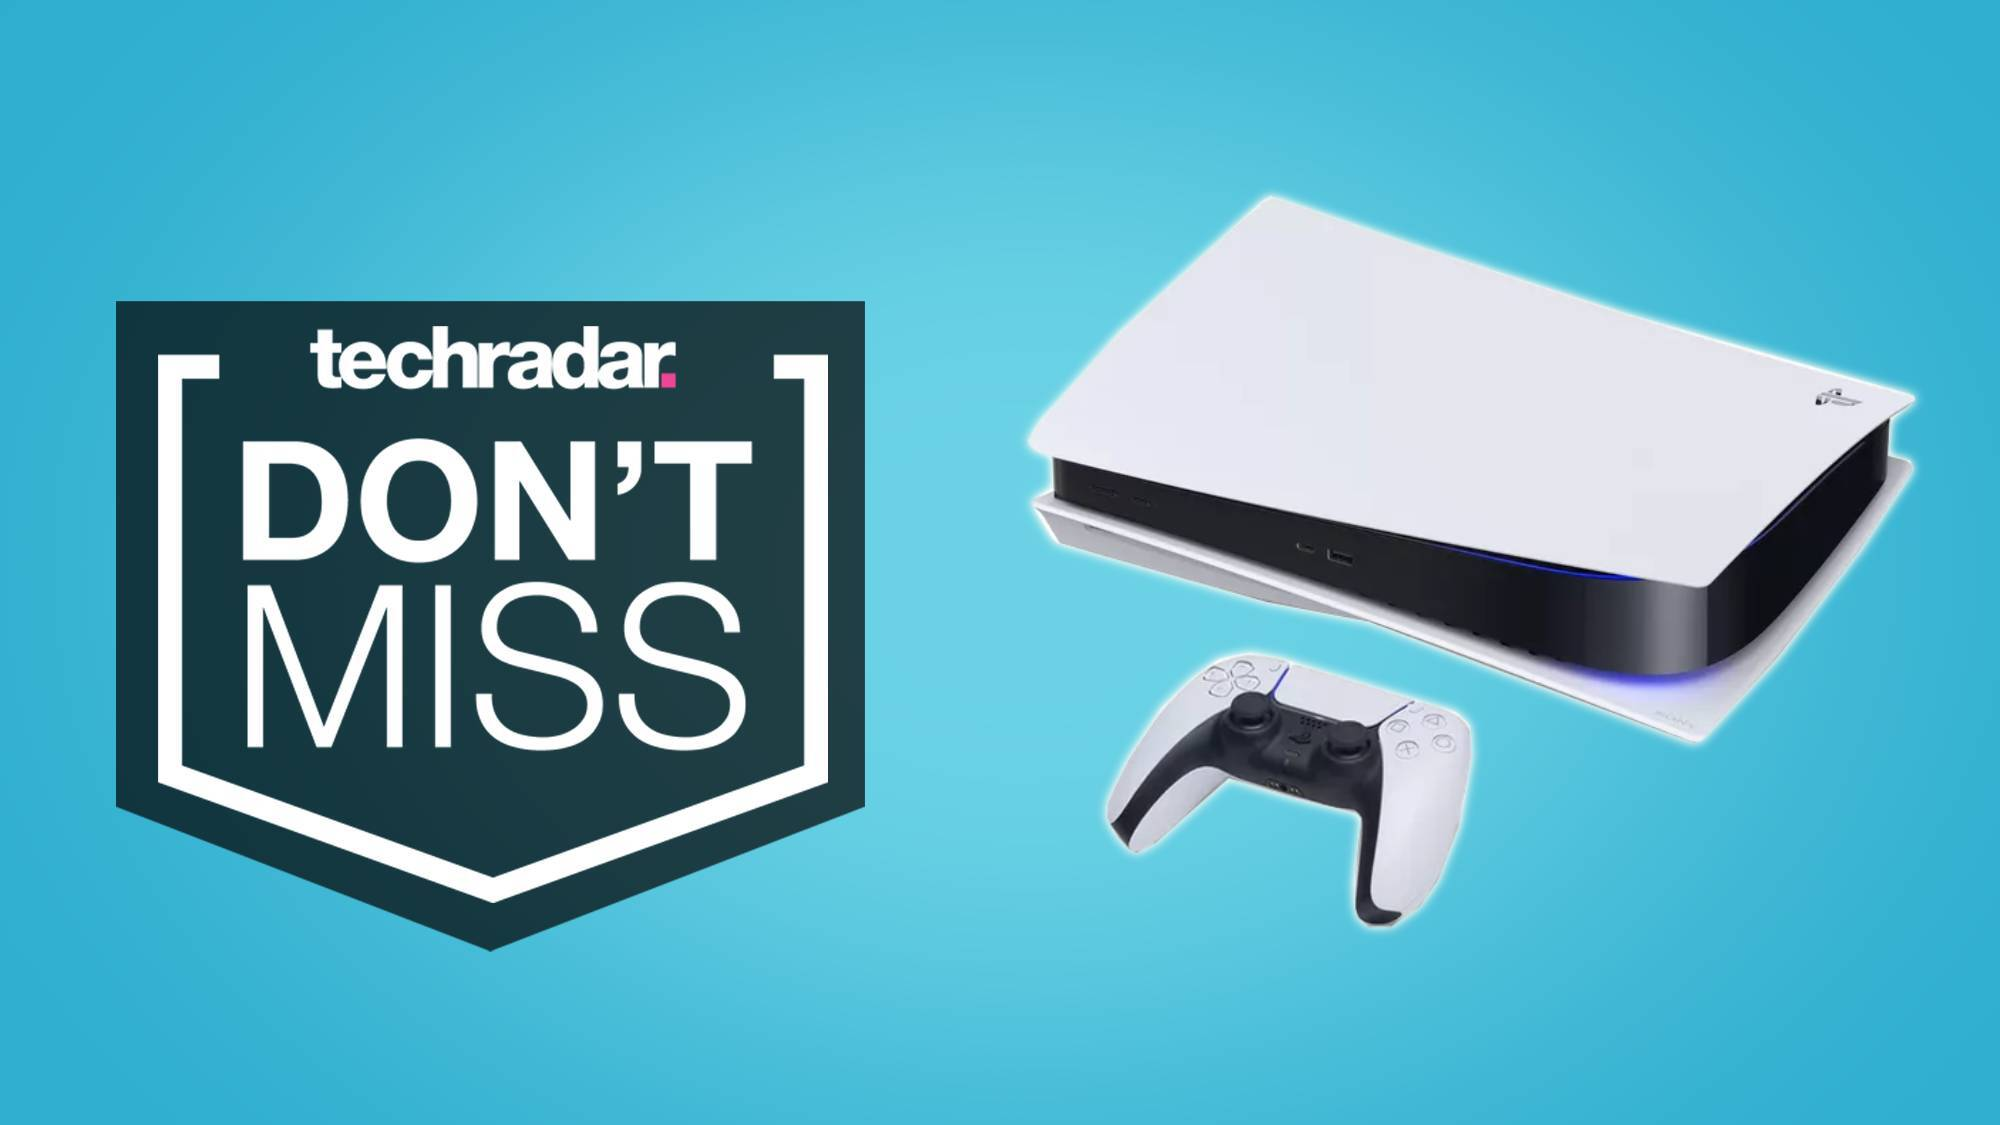 Amazon Ps5 Restock Time When And How To Buy One Of The 46 000 Ps5 Consoles Techradar